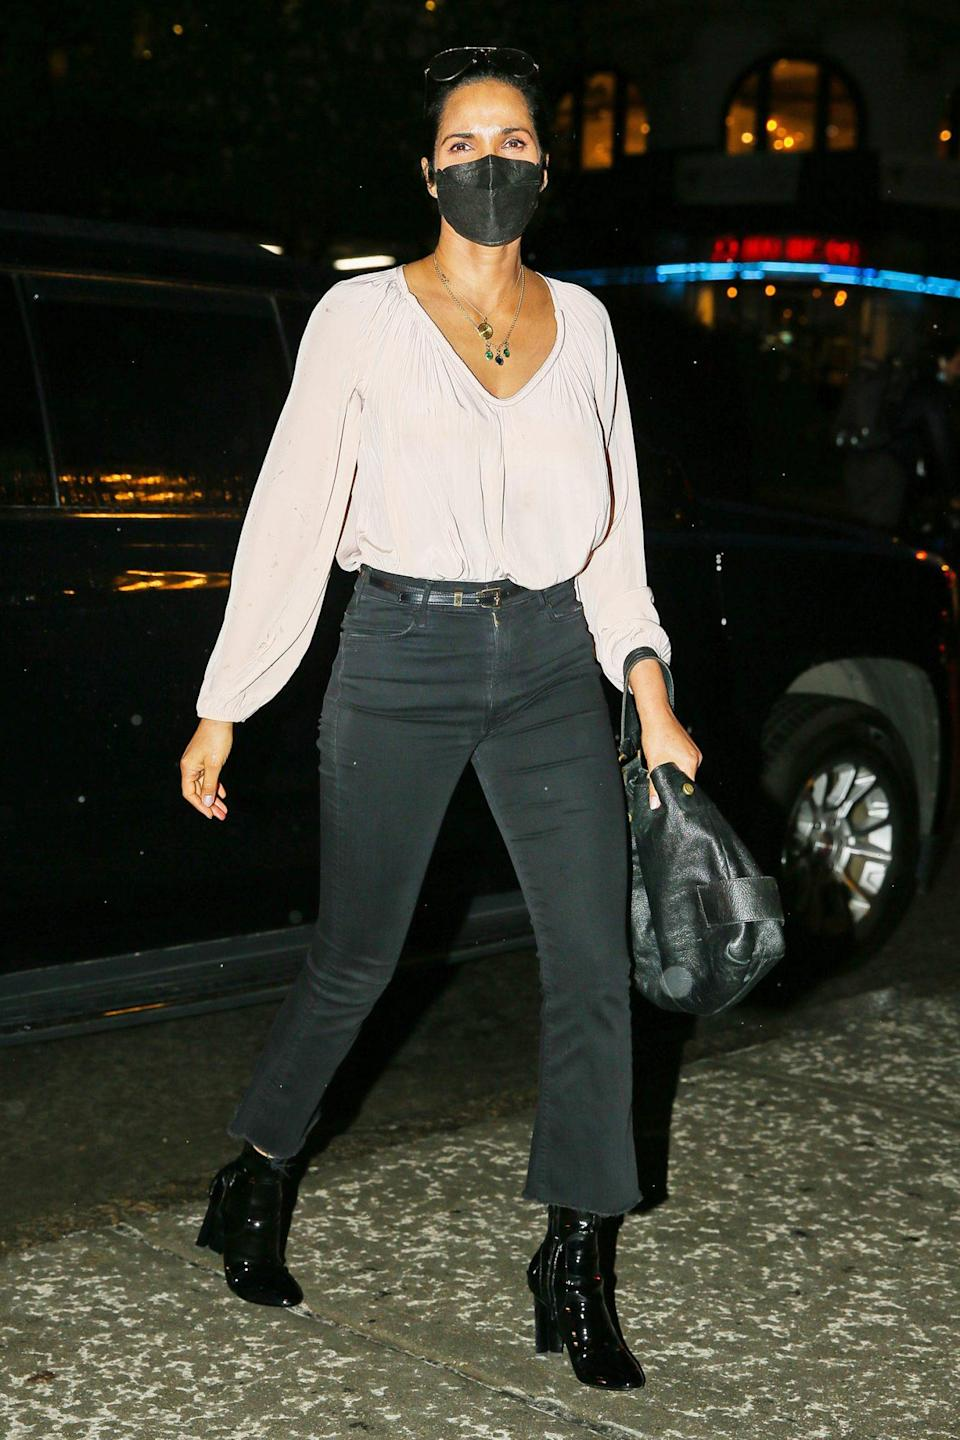 <p>Padma Lakshmi is seen returning home after a night out in N.Y.C. on Monday night.</p>